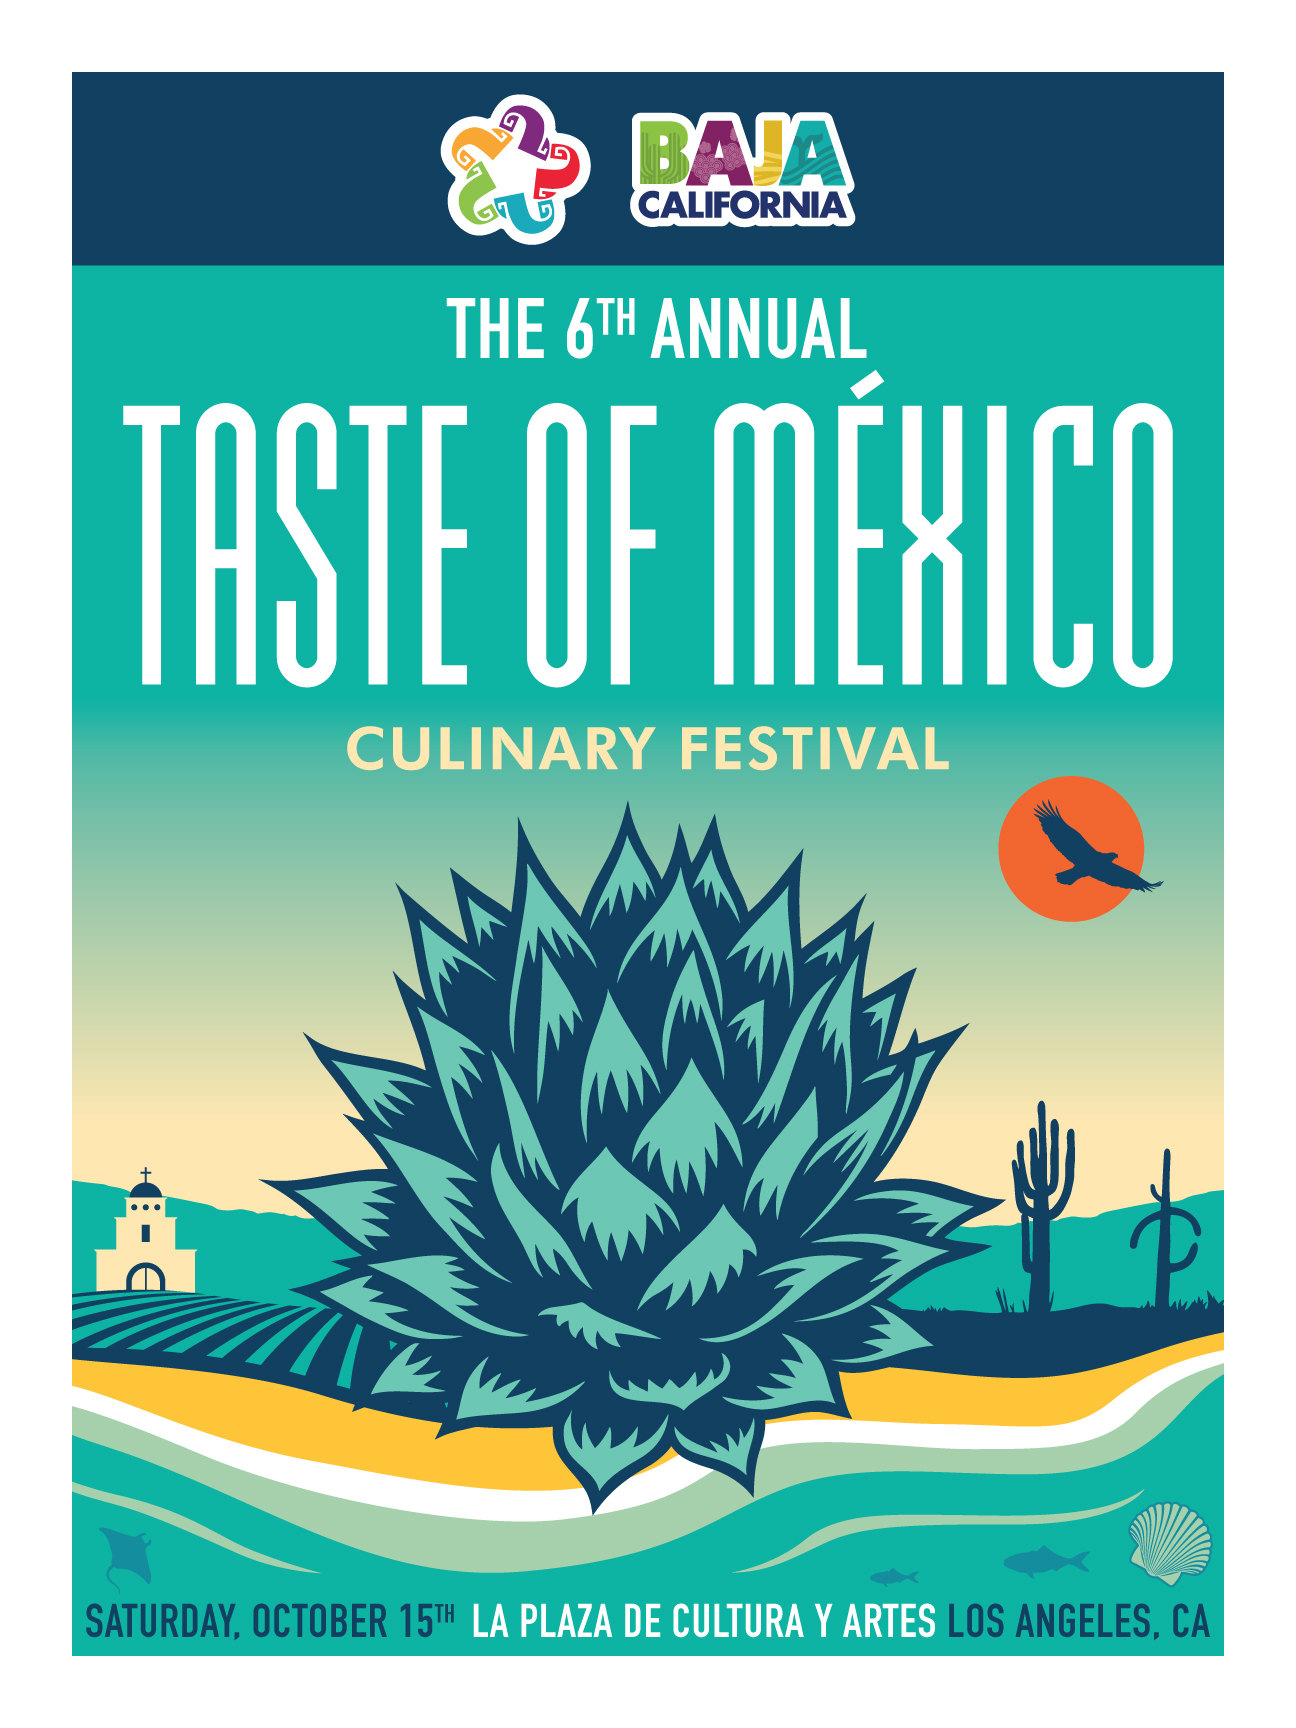 The 6th Annual Taste of Mexico Culinary Festival